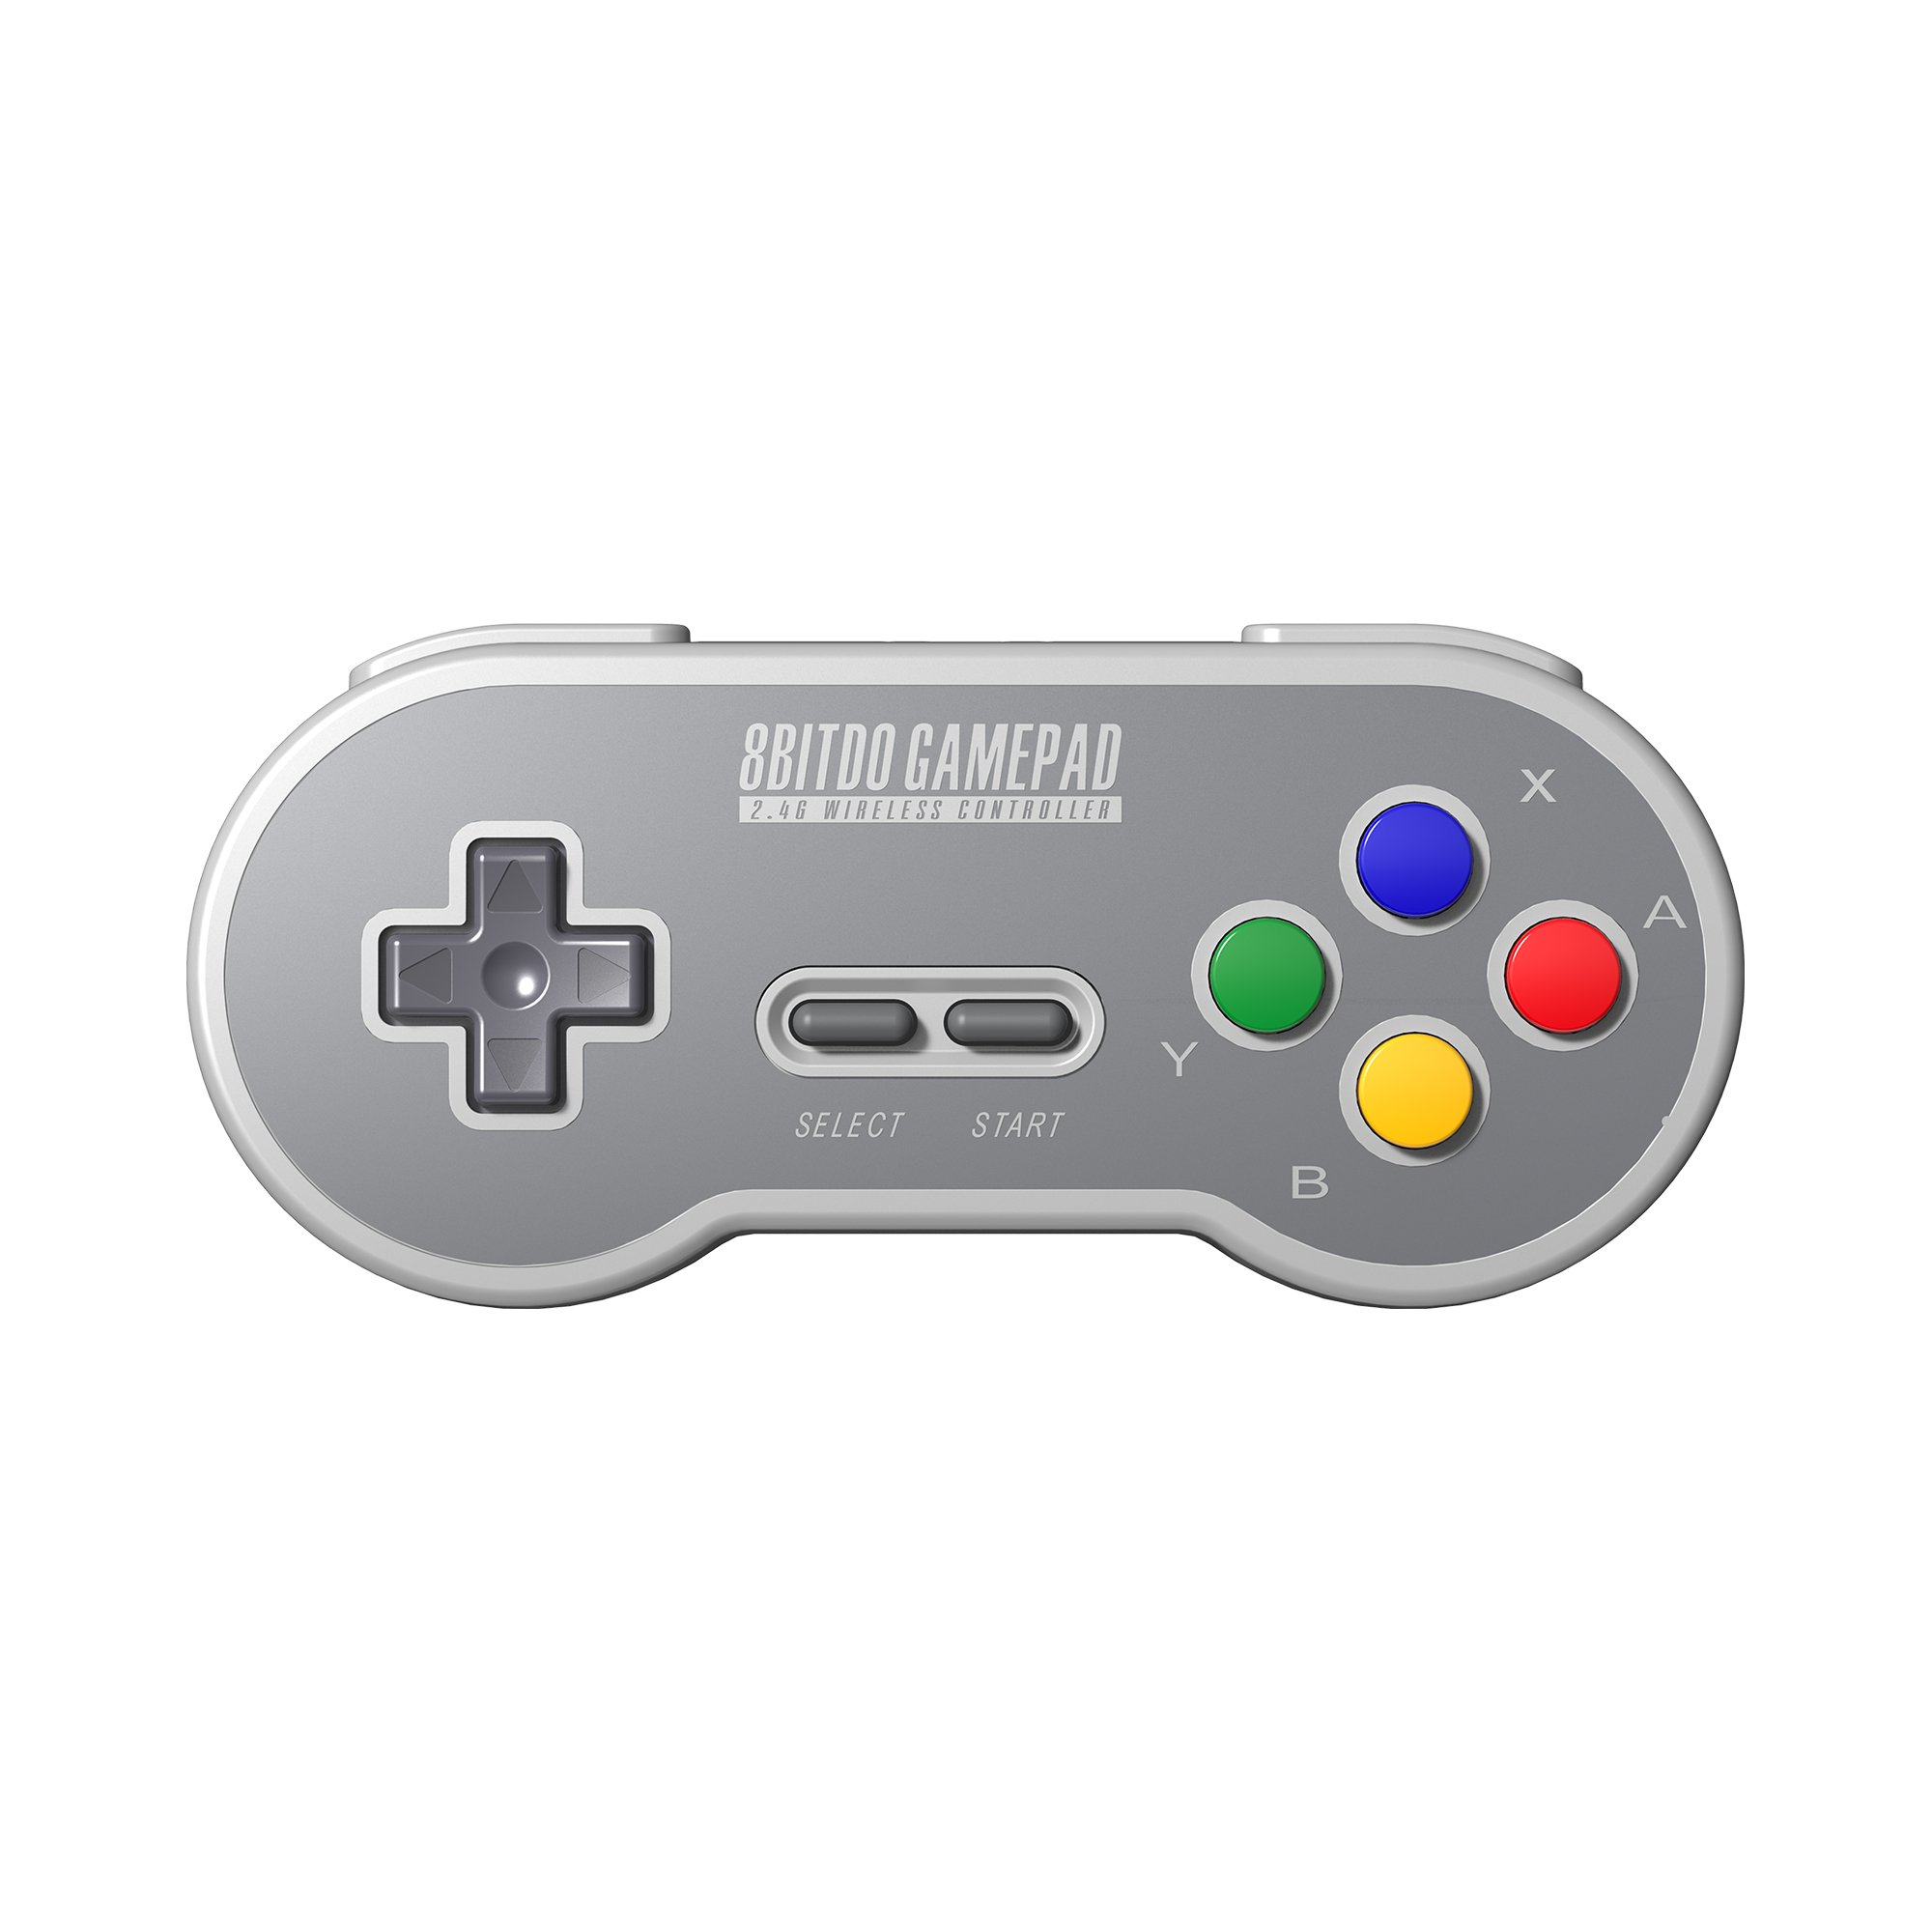 8Bitdo SF30 2.4G Wireless Controller for SFC Classic Edition by 8Bitdo (Image #5)